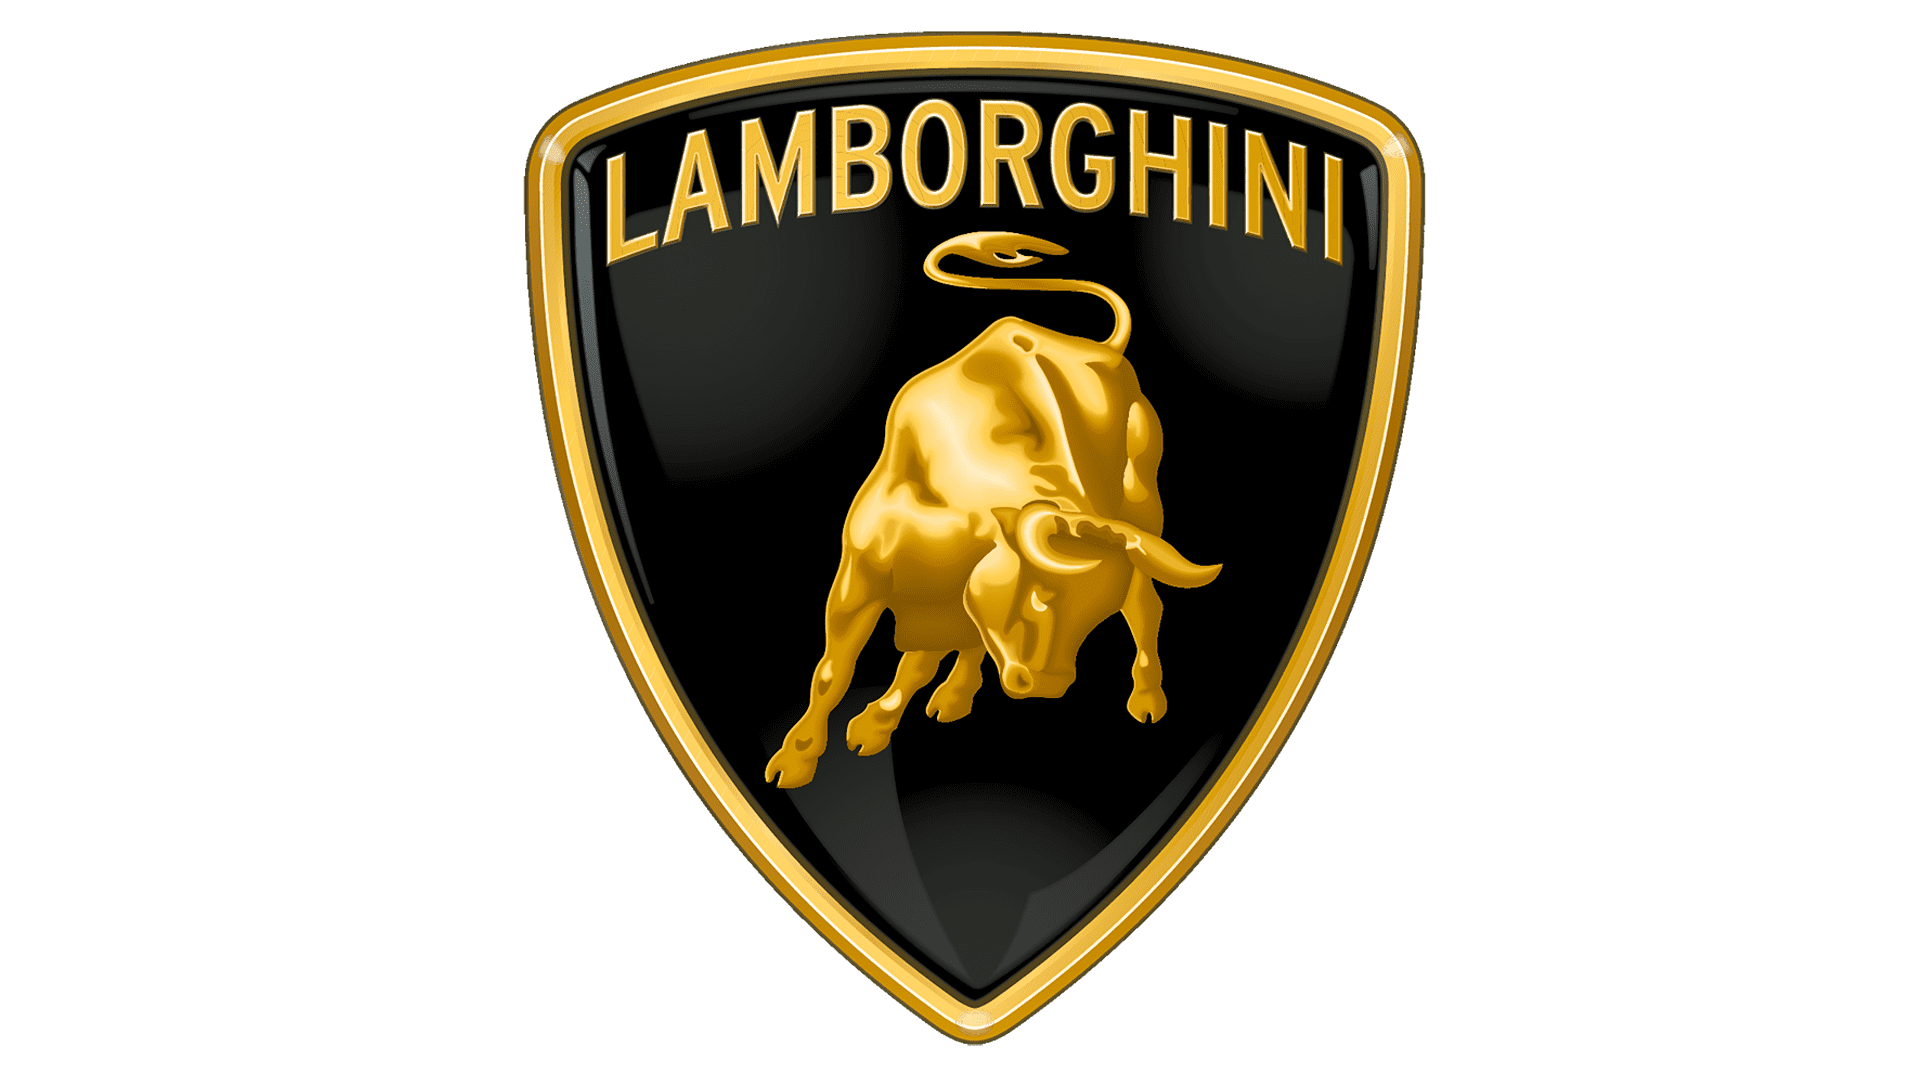 control car racing with Lamborghini Logo on Yamaha Xsr 700 Another Spicy Scrambler Rapidbike also 2018 Bentley Bentayga as well Sport Car as well Watch likewise Green beast.